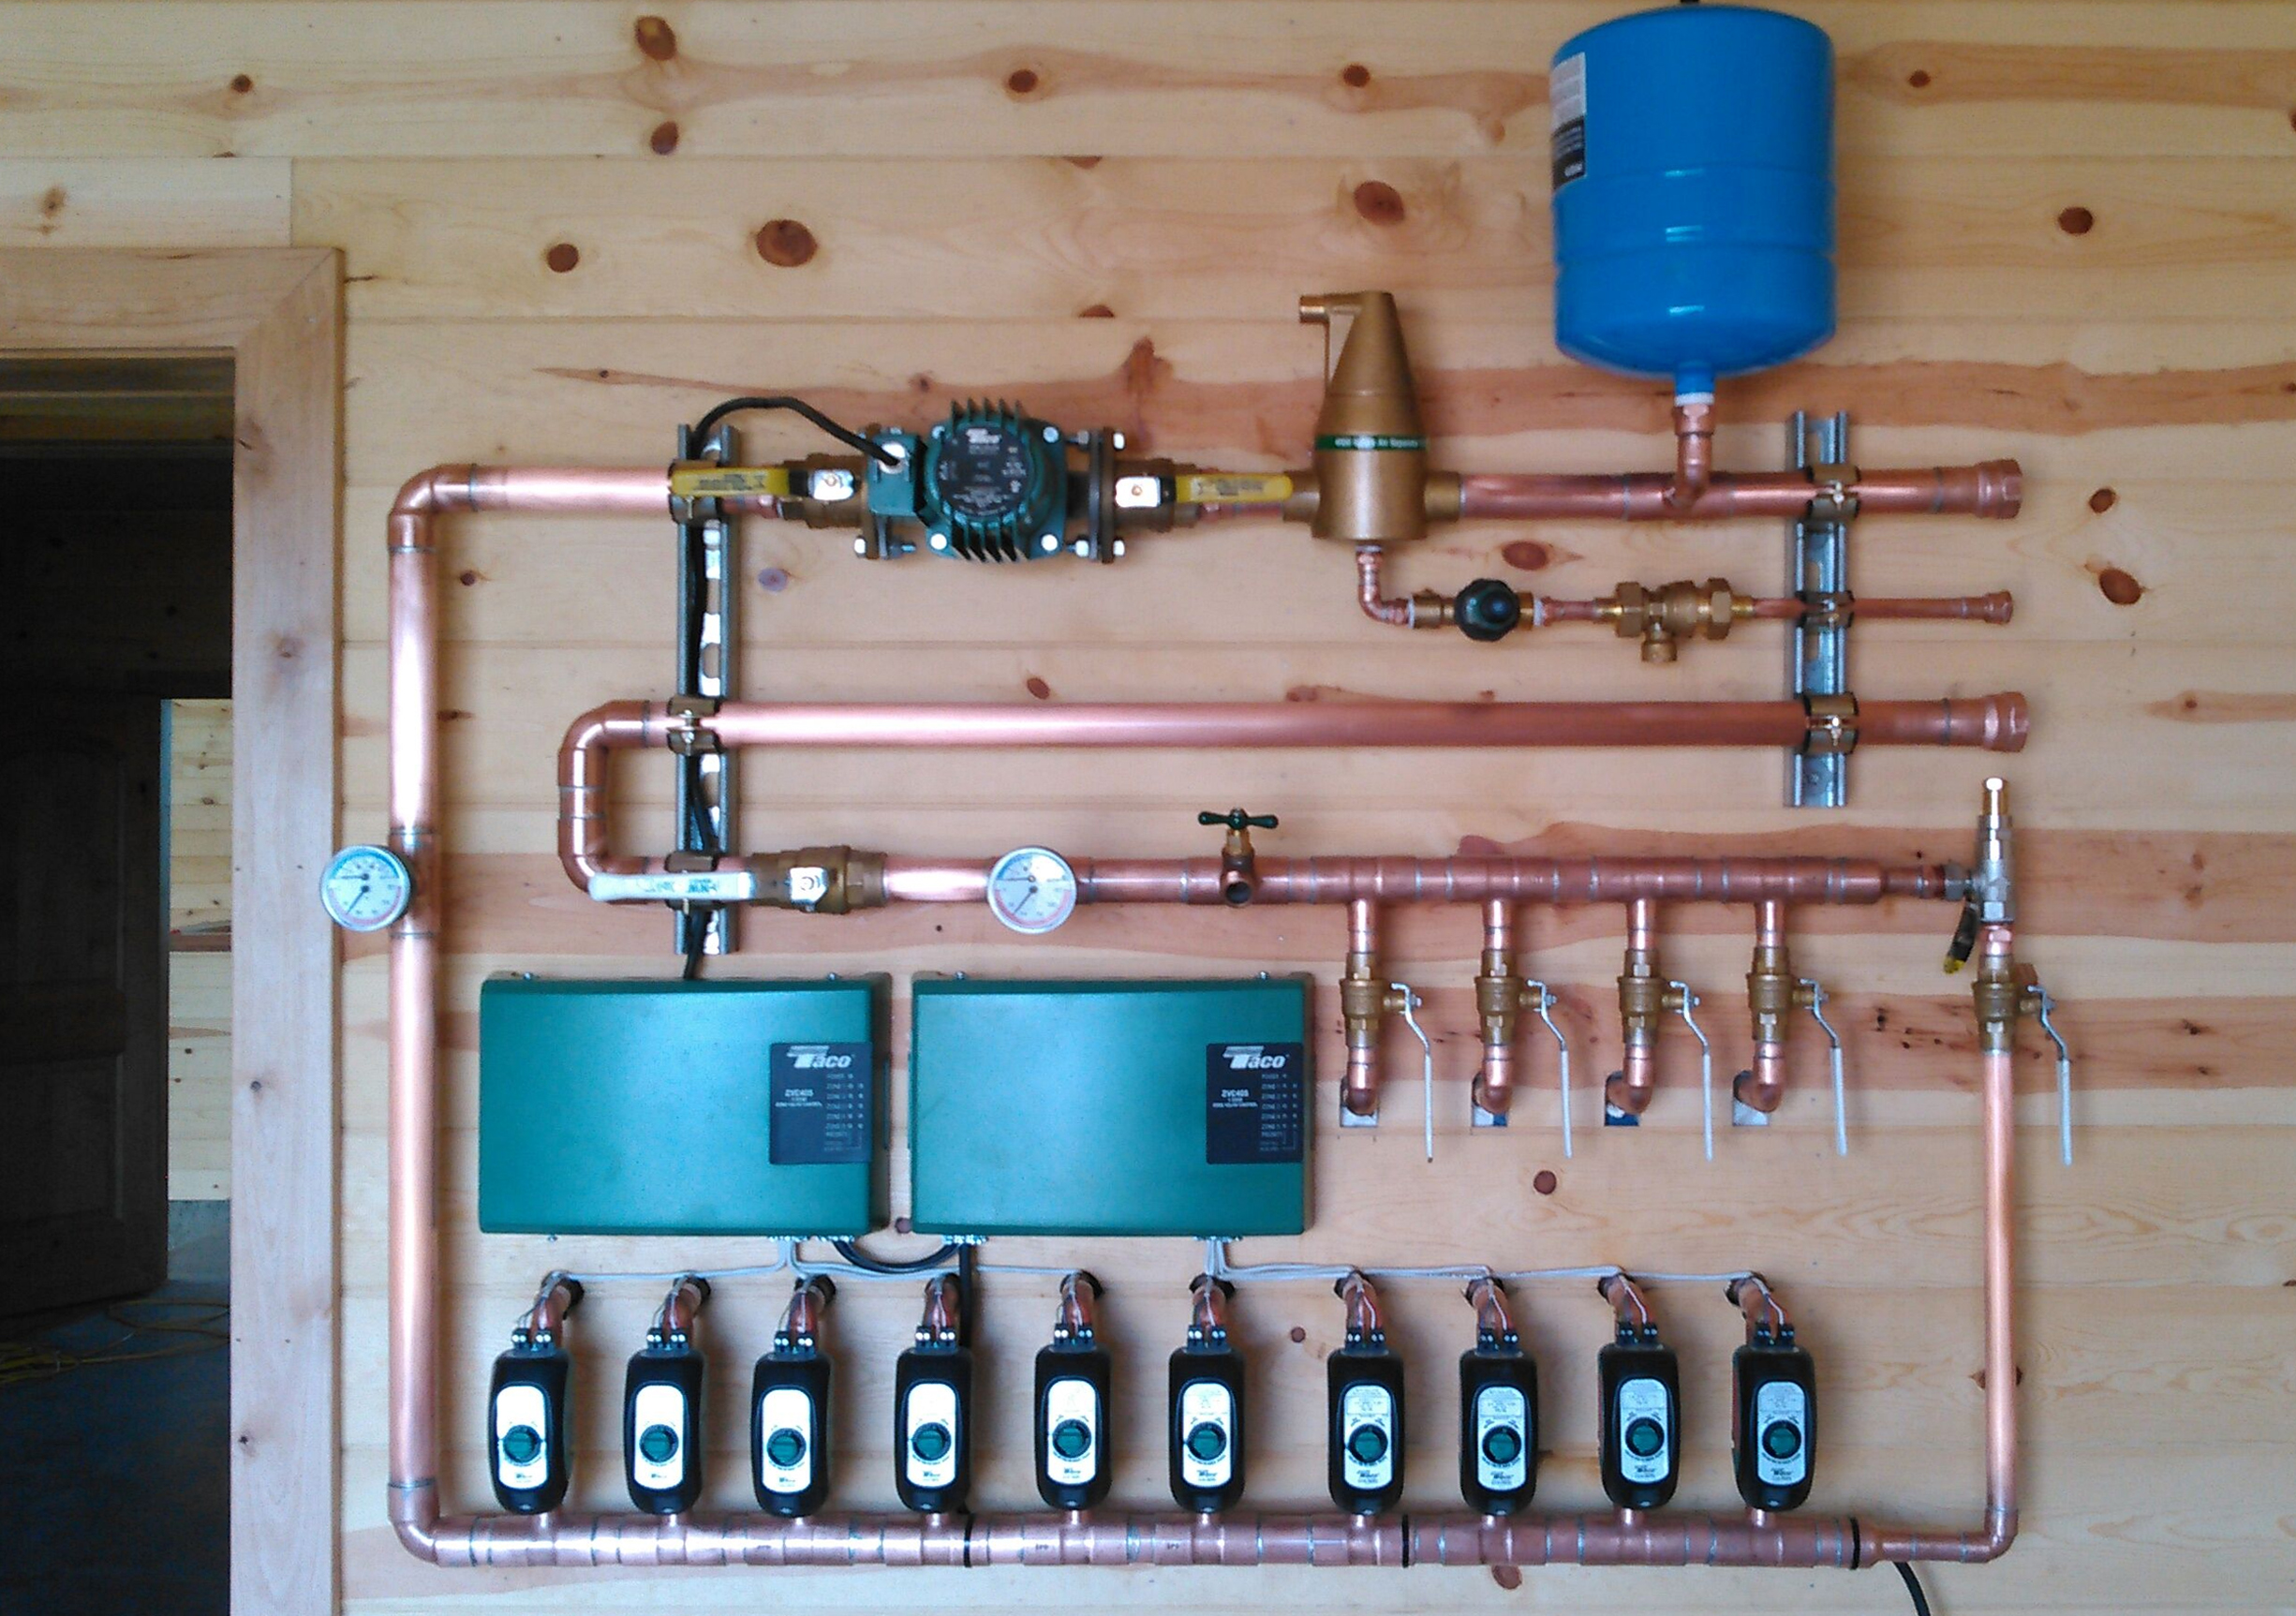 A Solarponics radiant heating and cooling system